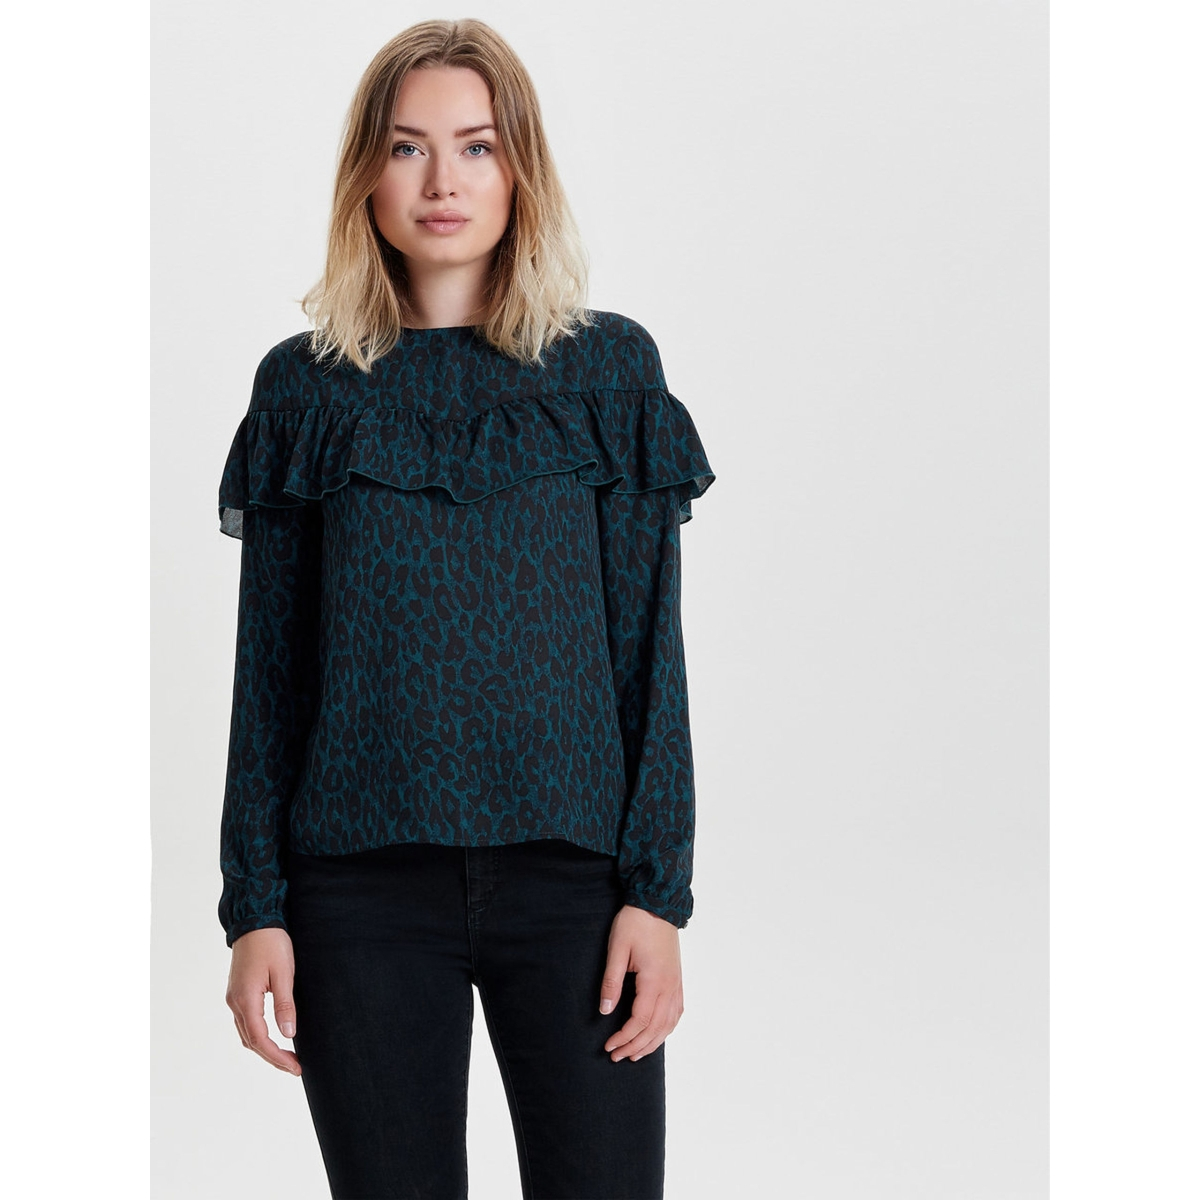 onlsui l/s ruffle top aop wvn 15141767 only blouse reflecting pond/ groen